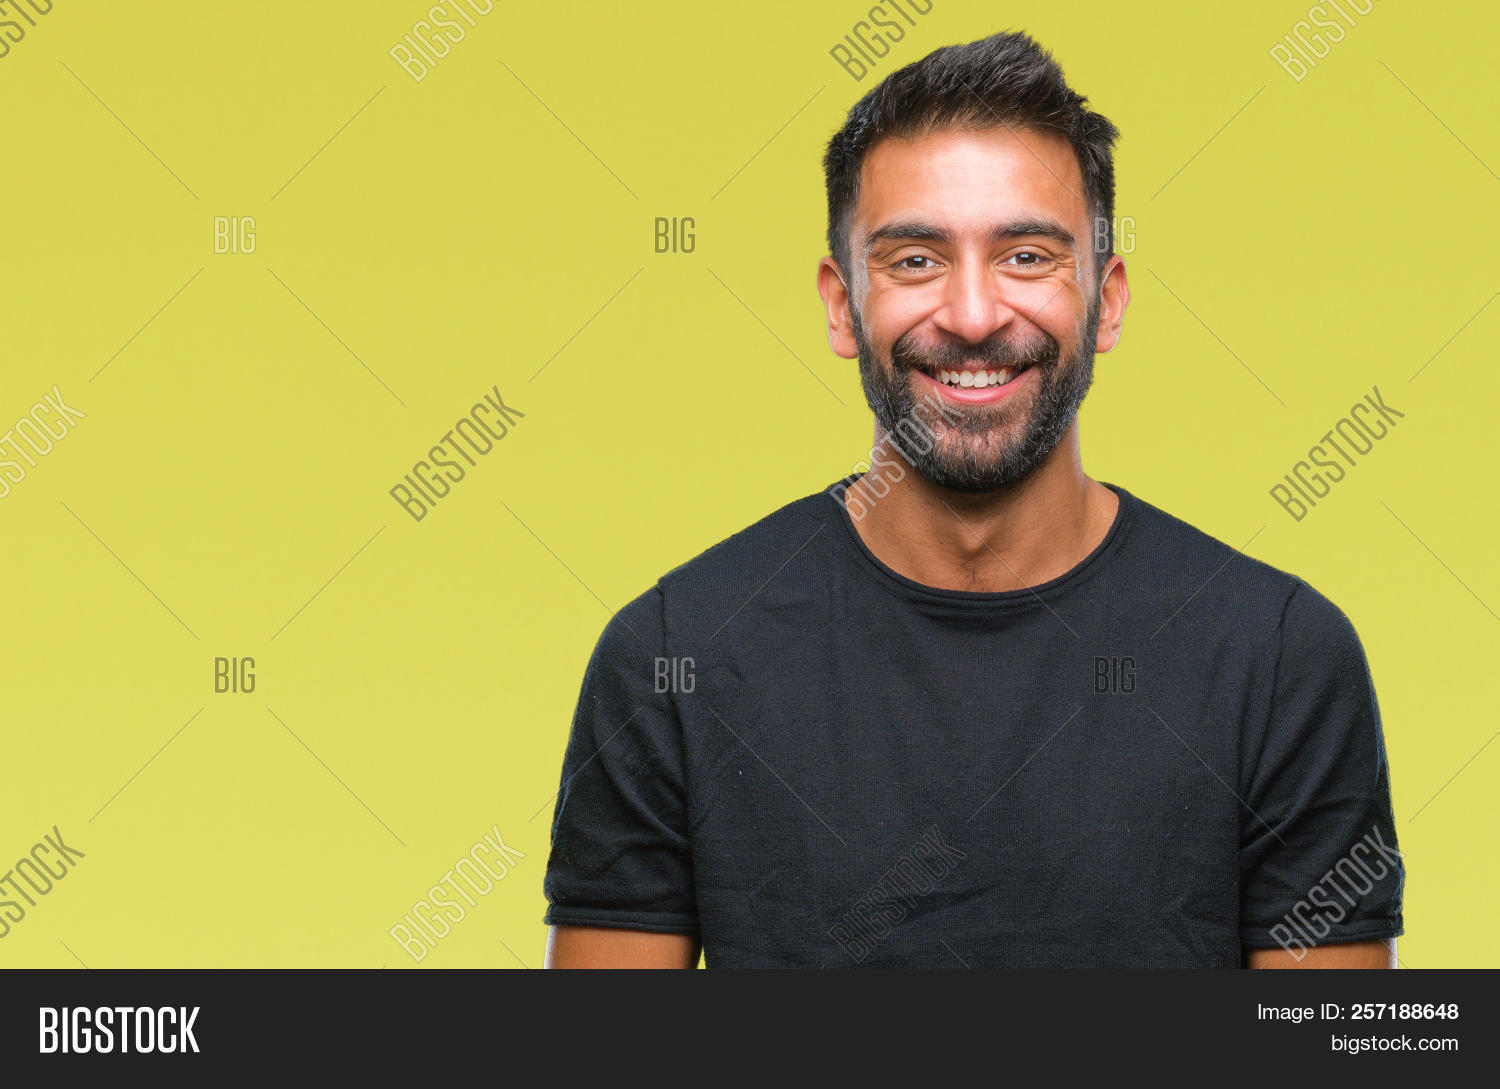 adult,background,boy,business,cheerful,confidence,confident,cool,excited,expression,face,fashion,front,happiness,happy,hispanic,indian,isolated,joy,laugh,laughing,lifestyle,looking,lucky,male,man,model,mouth,natural,perfect,person,portrait,positive,proud,smile,smiling,style,success,teeth,trust,yes,young